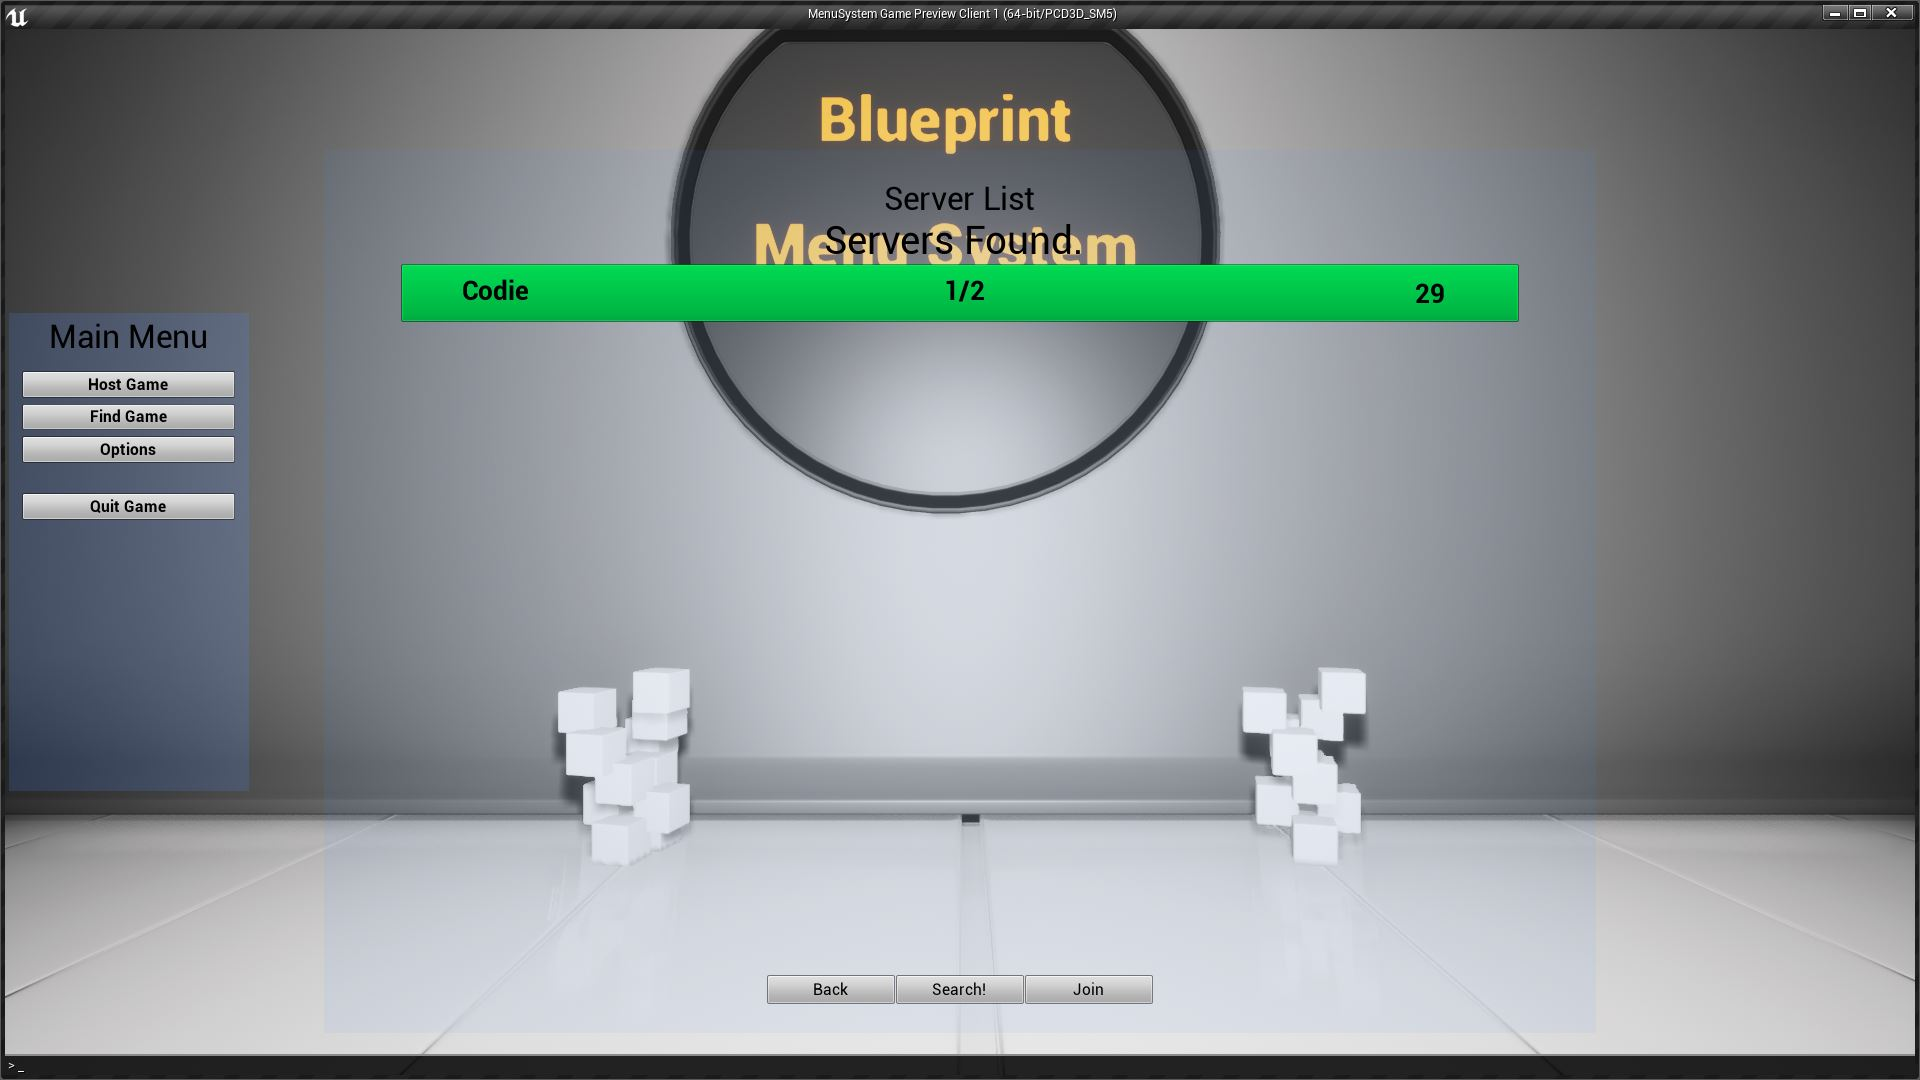 Blueprint menu system by codie in blueprints ue4 marketplace share malvernweather Choice Image